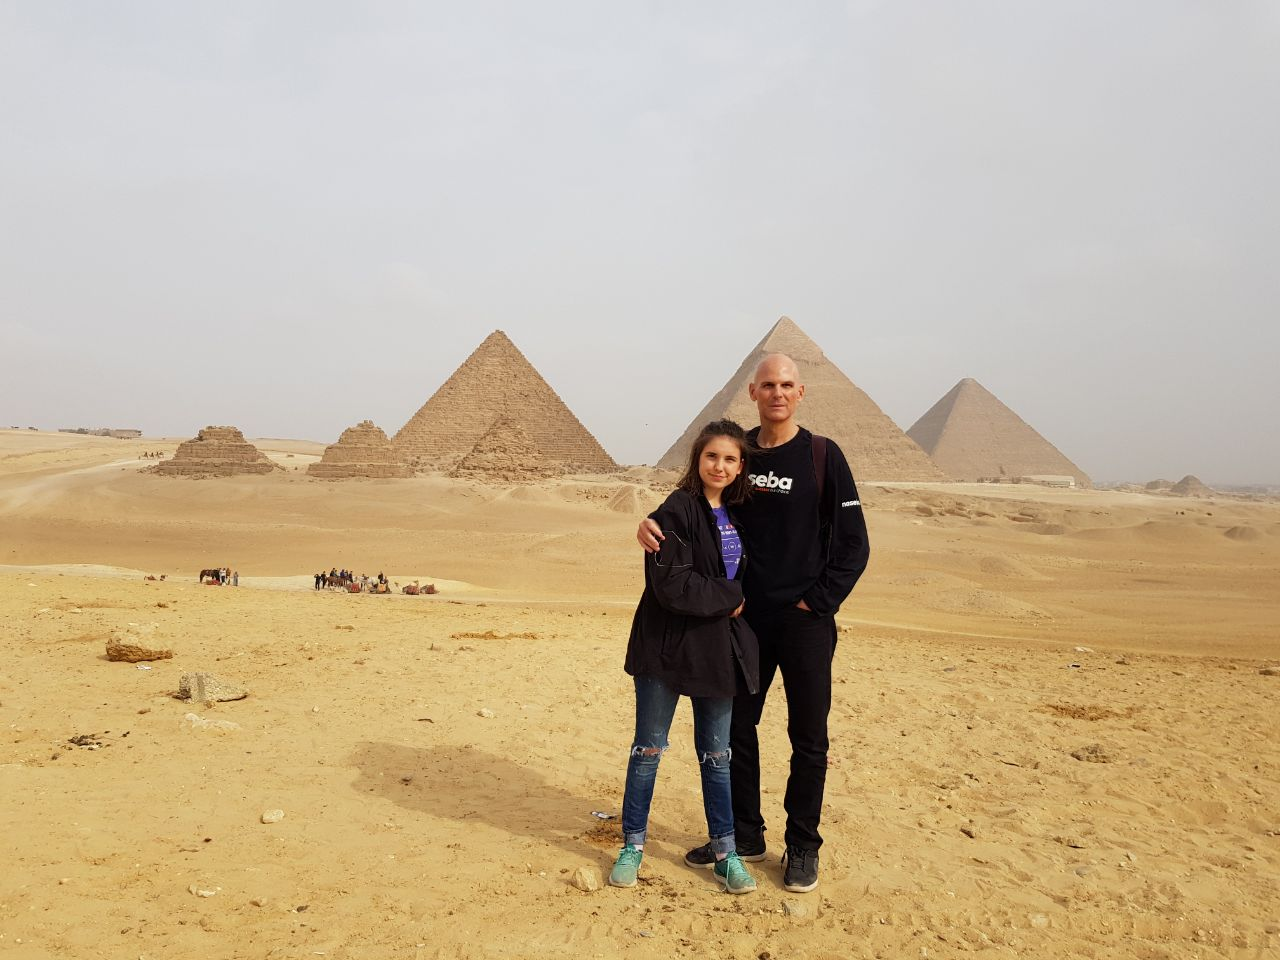 experiencing the pyramids of Giza and the streets of Cairo…